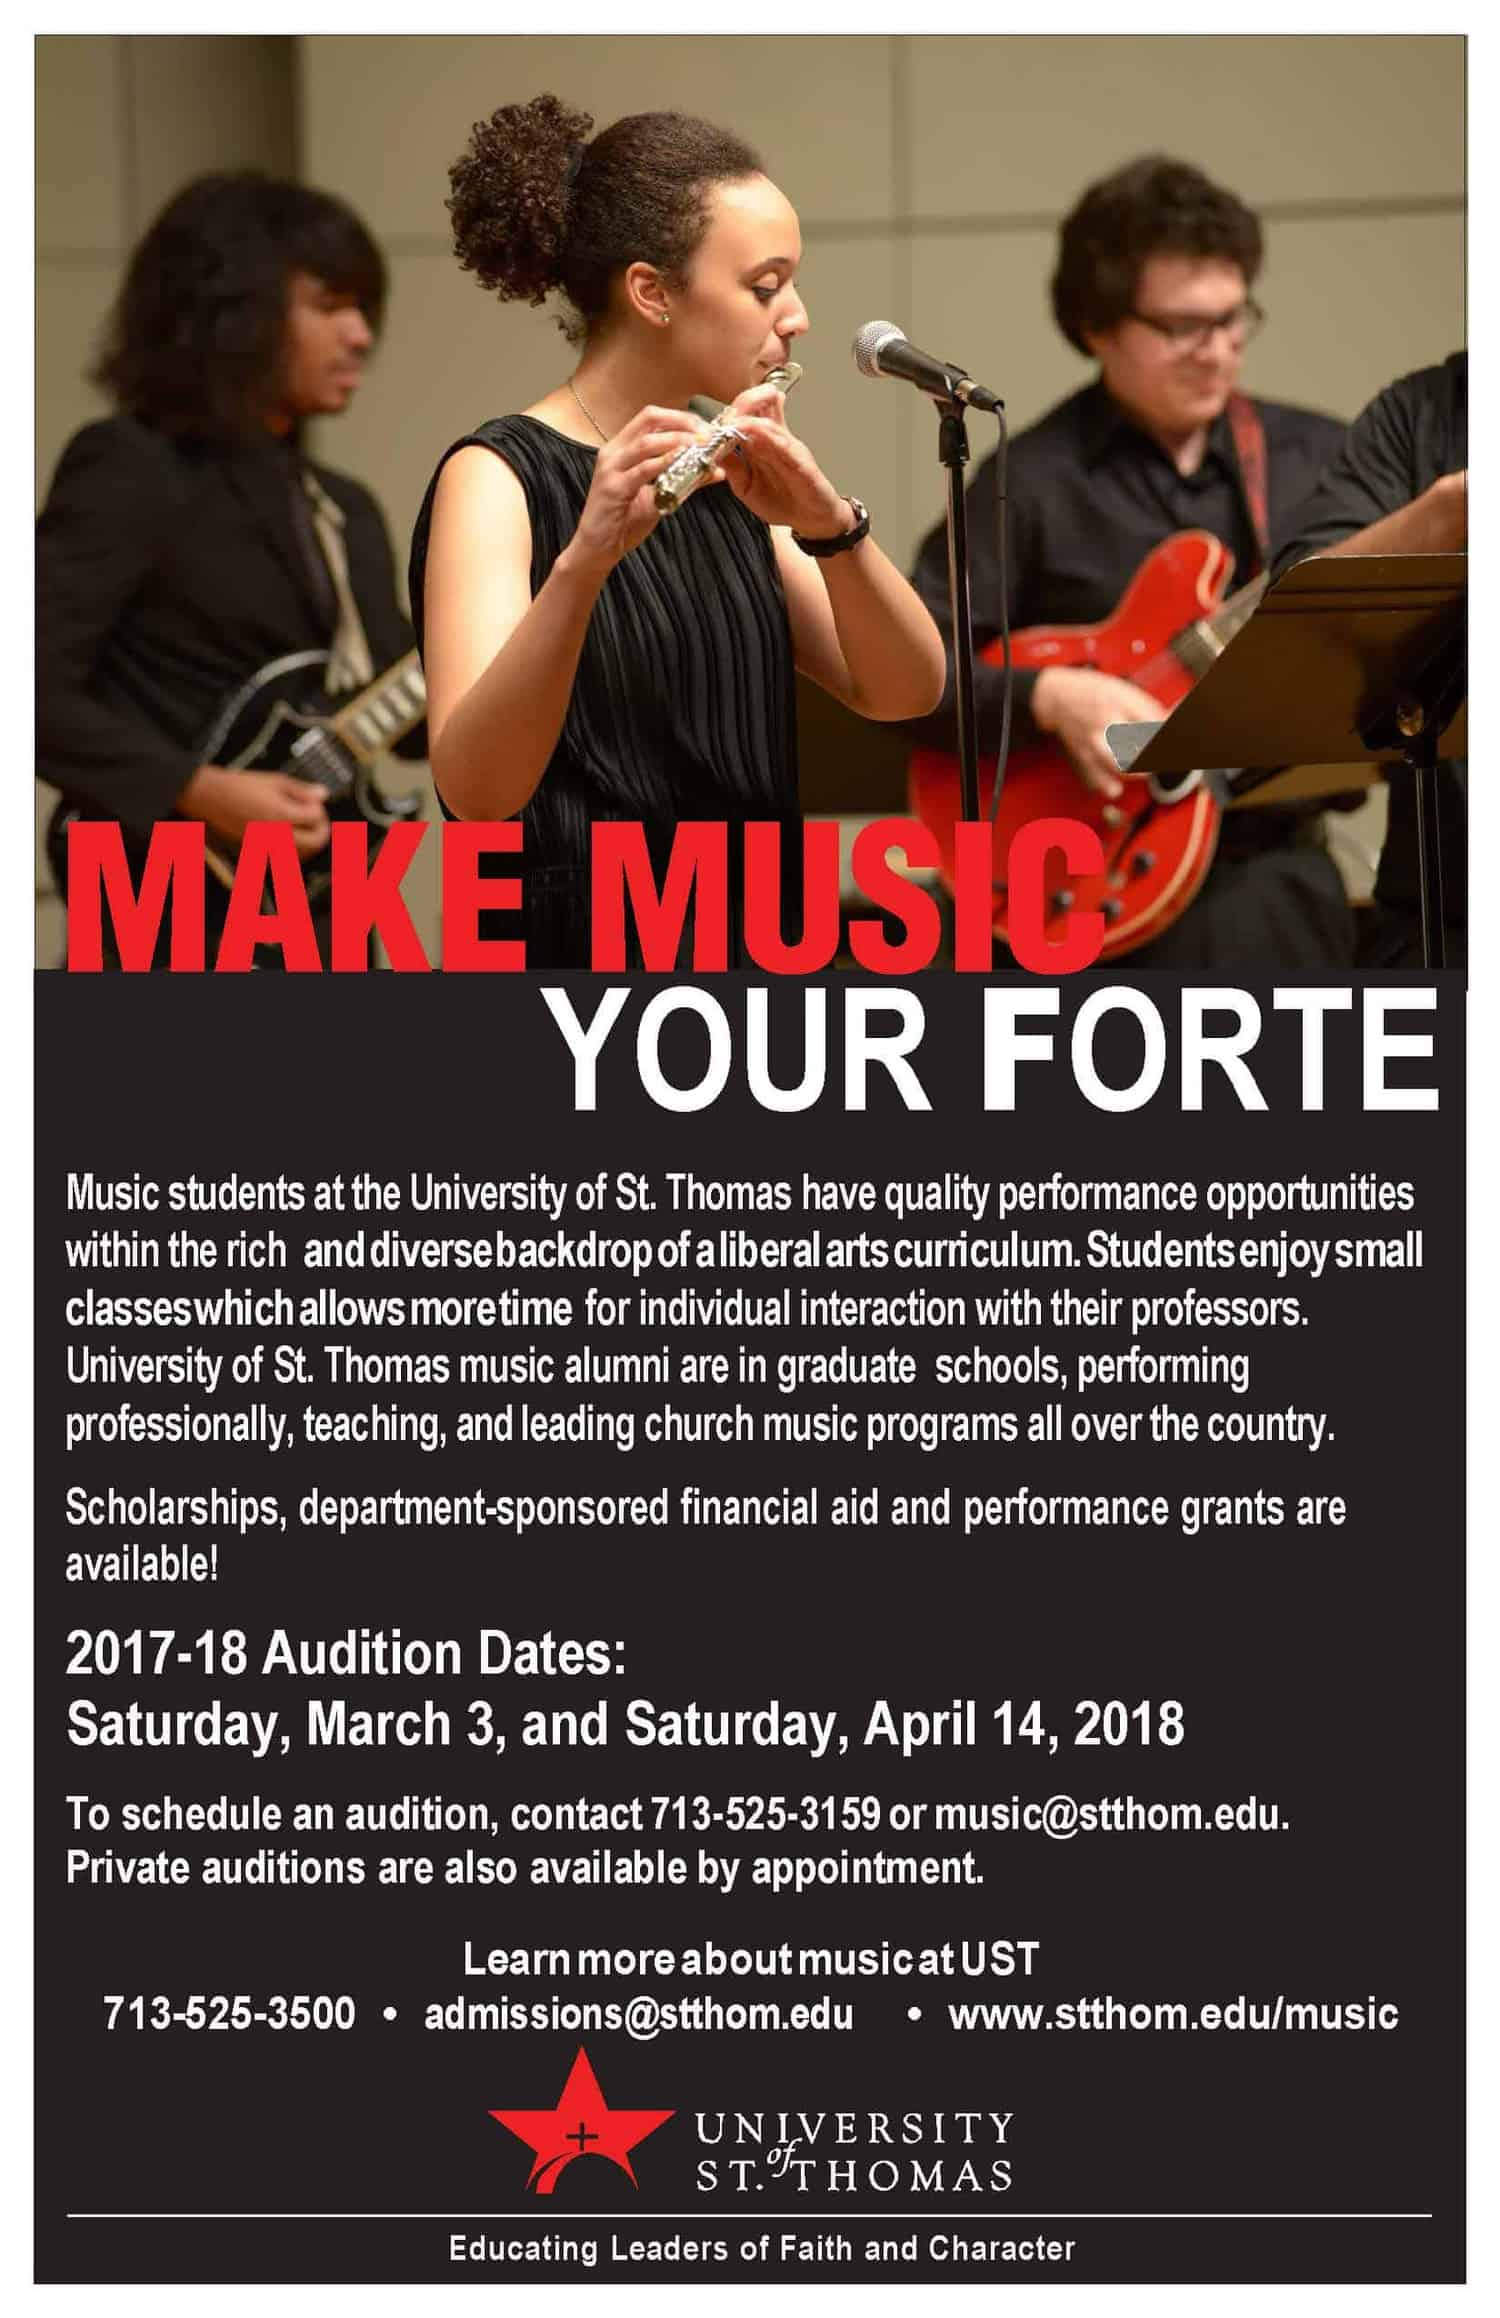 Music Students At The University Of St Thomas Have Quality Performance Opportunities Within Rich And Diverse Backdrop A Liberal Arts Curriculum